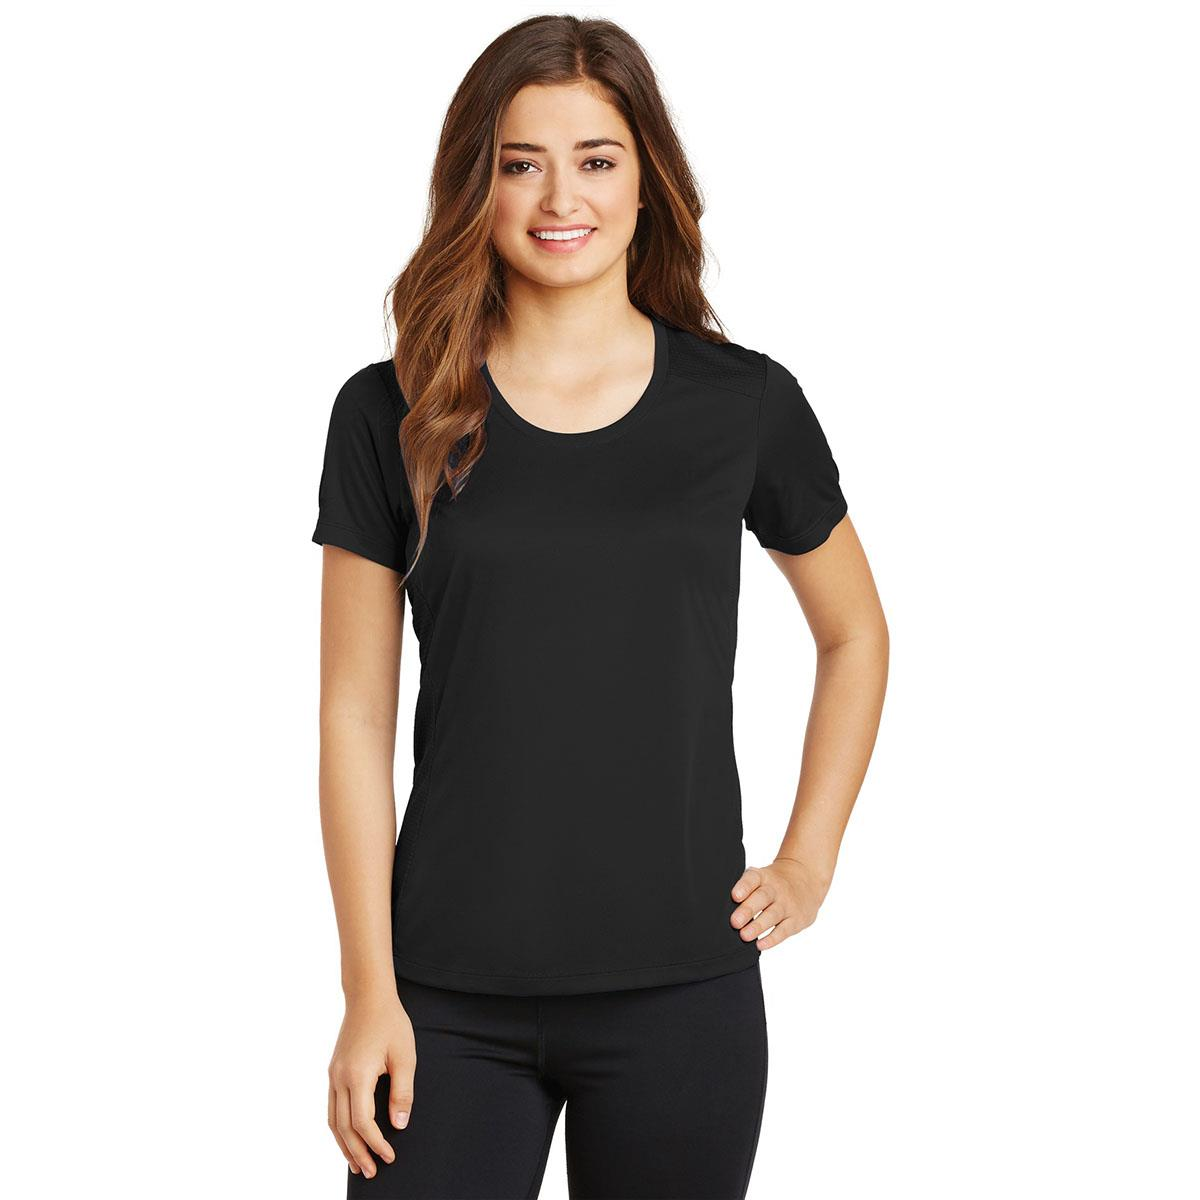 Ladies Elevate Scoop Neck Moisture Wicking Tee With Protective Underarm Shields Style #LST380 - kleinerts.com